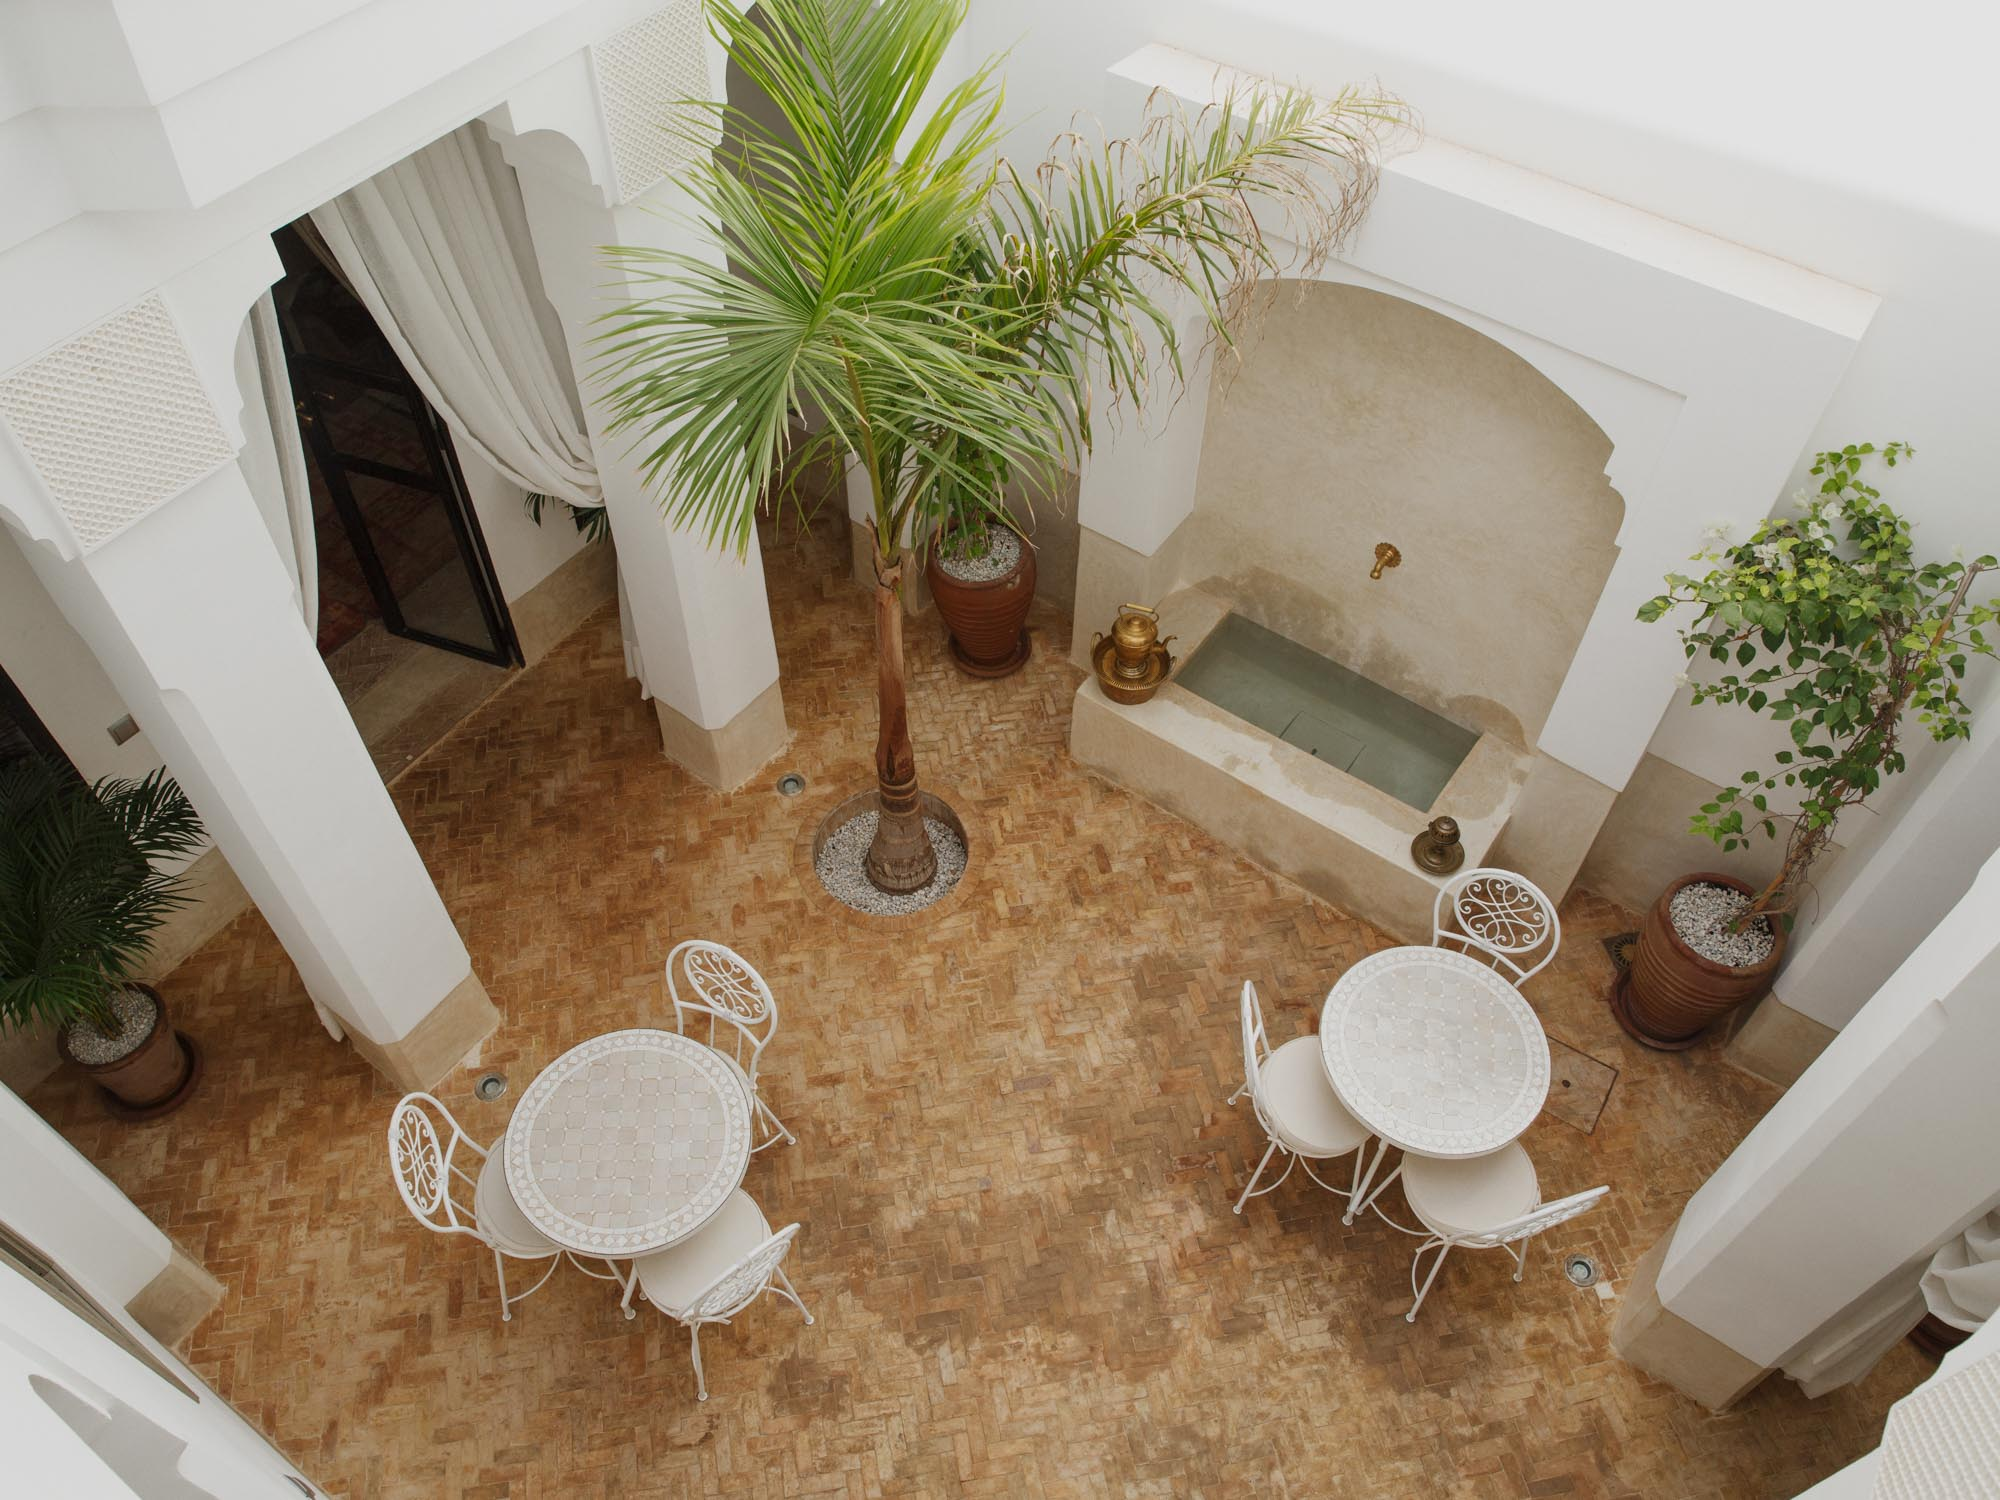 View of Hotel Room Patio from upper Balcony showing tables, chairs, plants and water fountain.